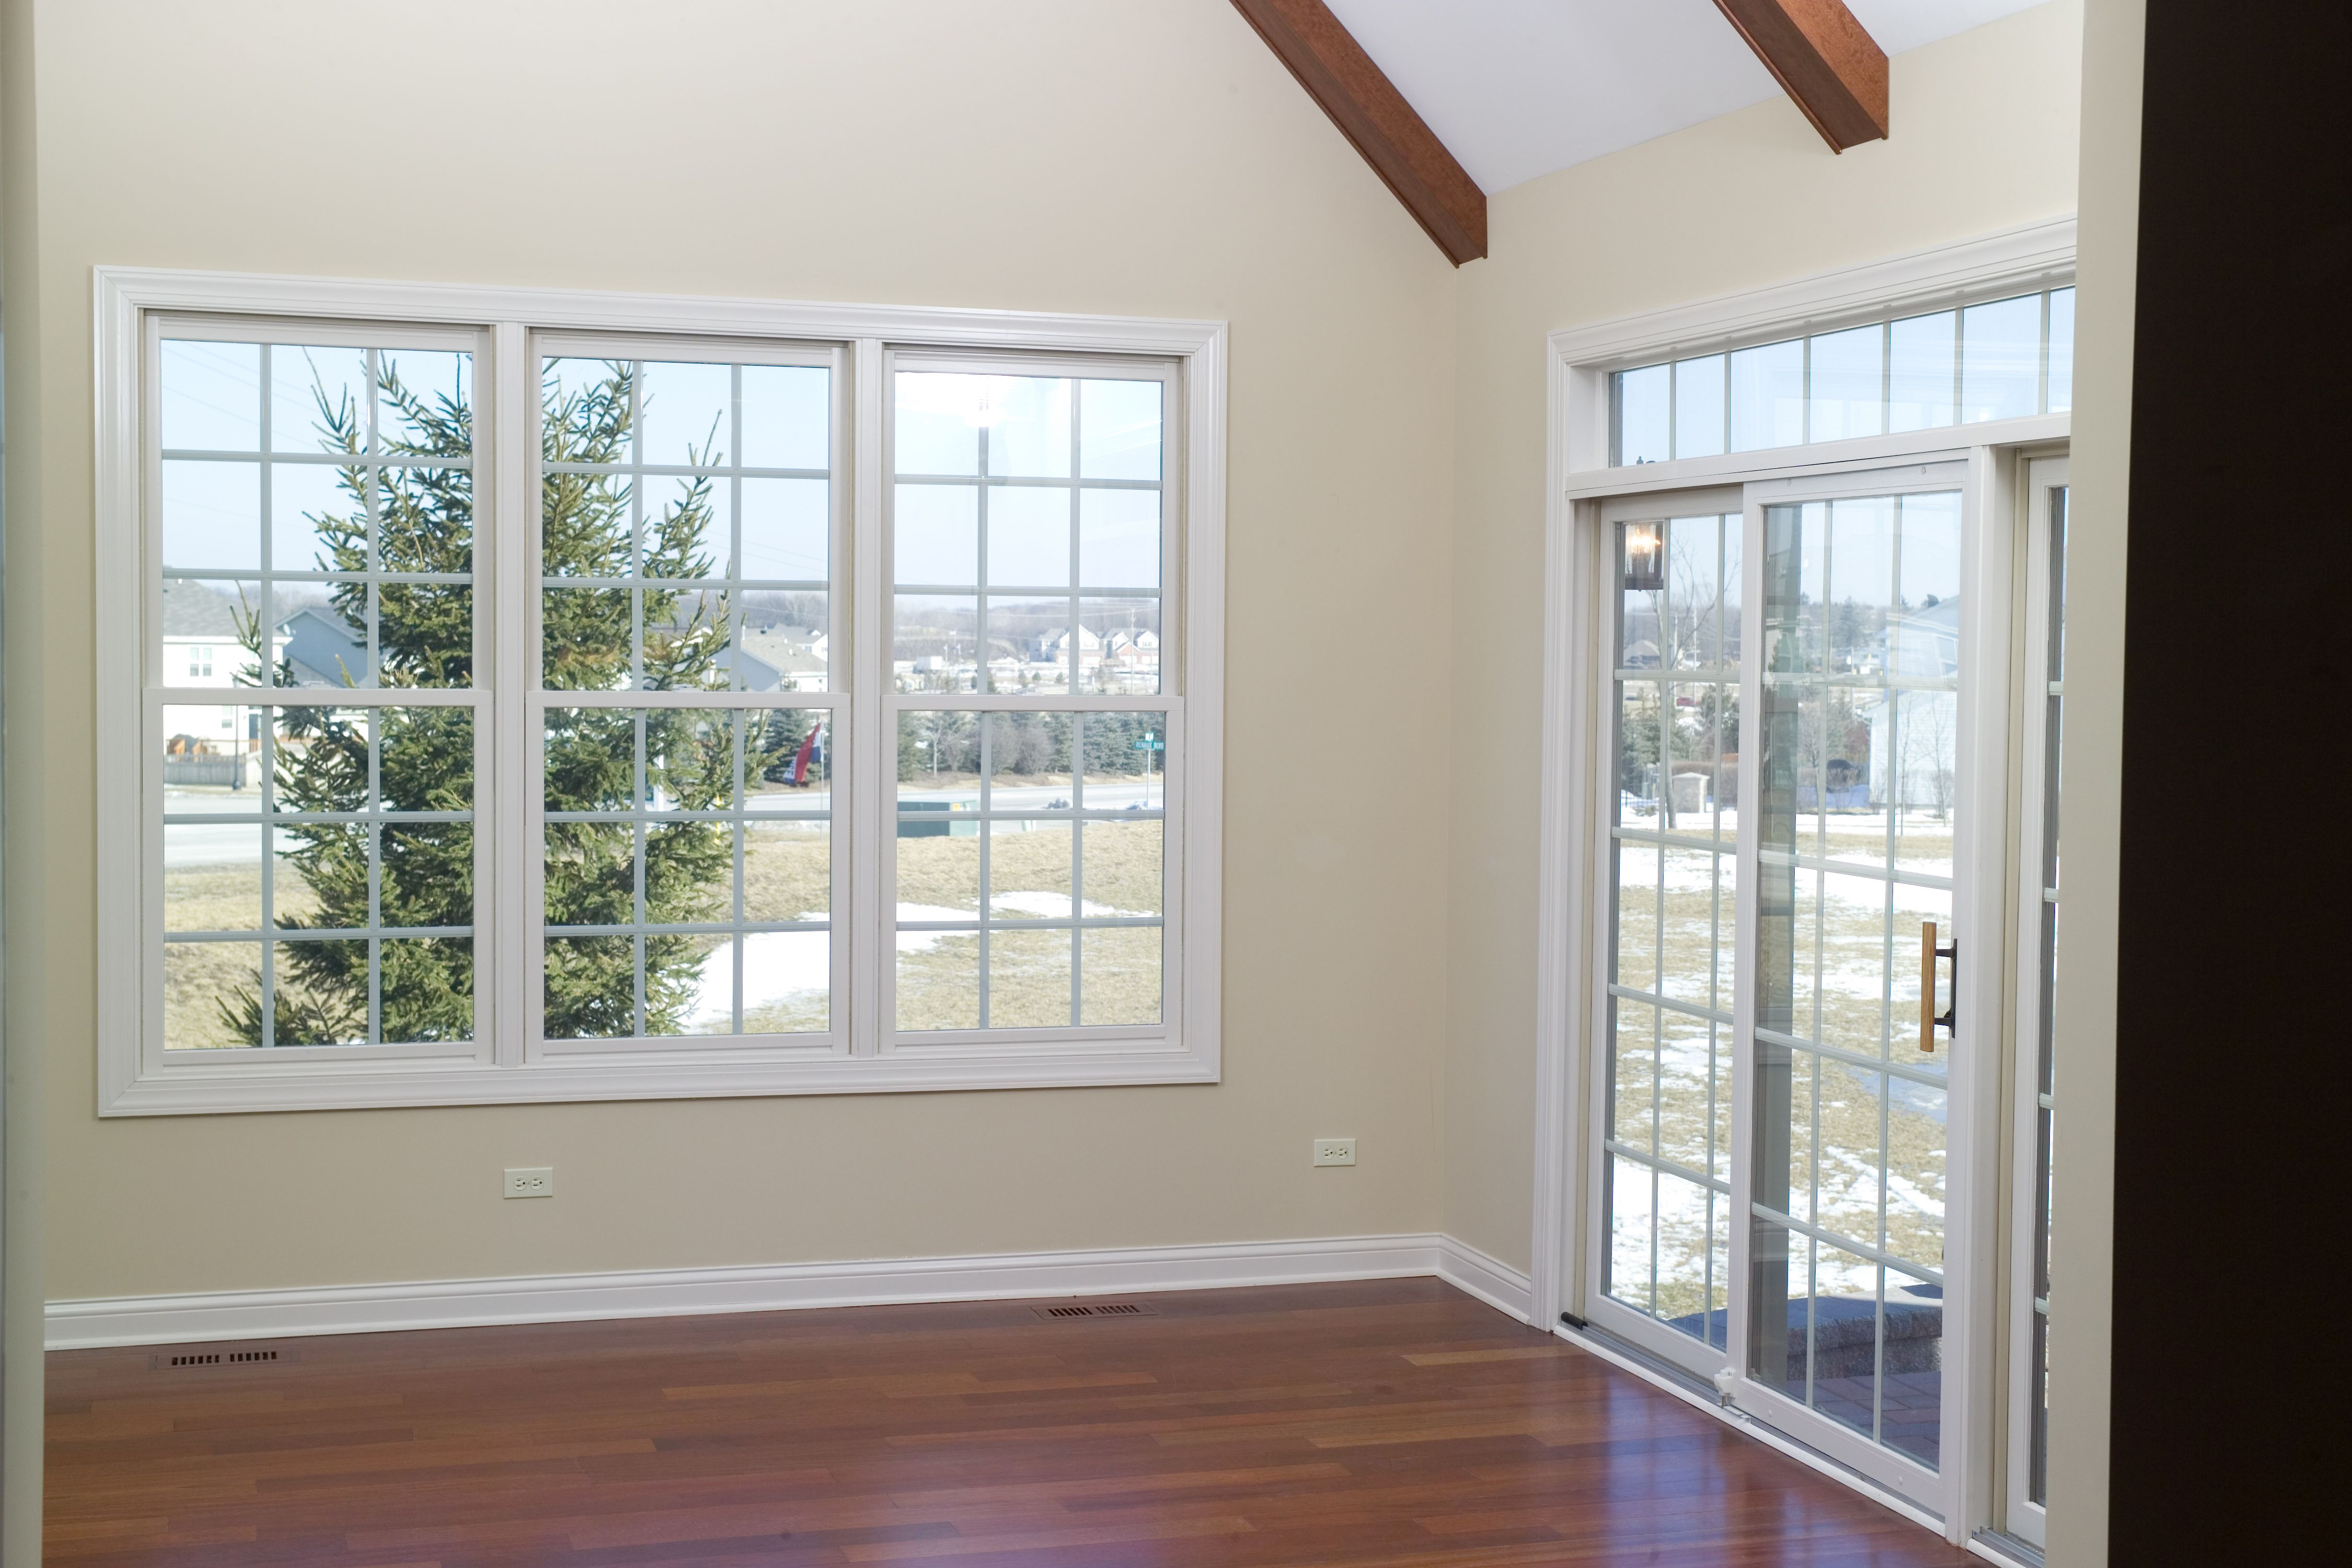 Casco Double Hung Windows And Aluminum Clad Wood Doors In Slider Design With Transom Windows Manufactured In South Elgin Il Windows Transom Windows Clad Wood